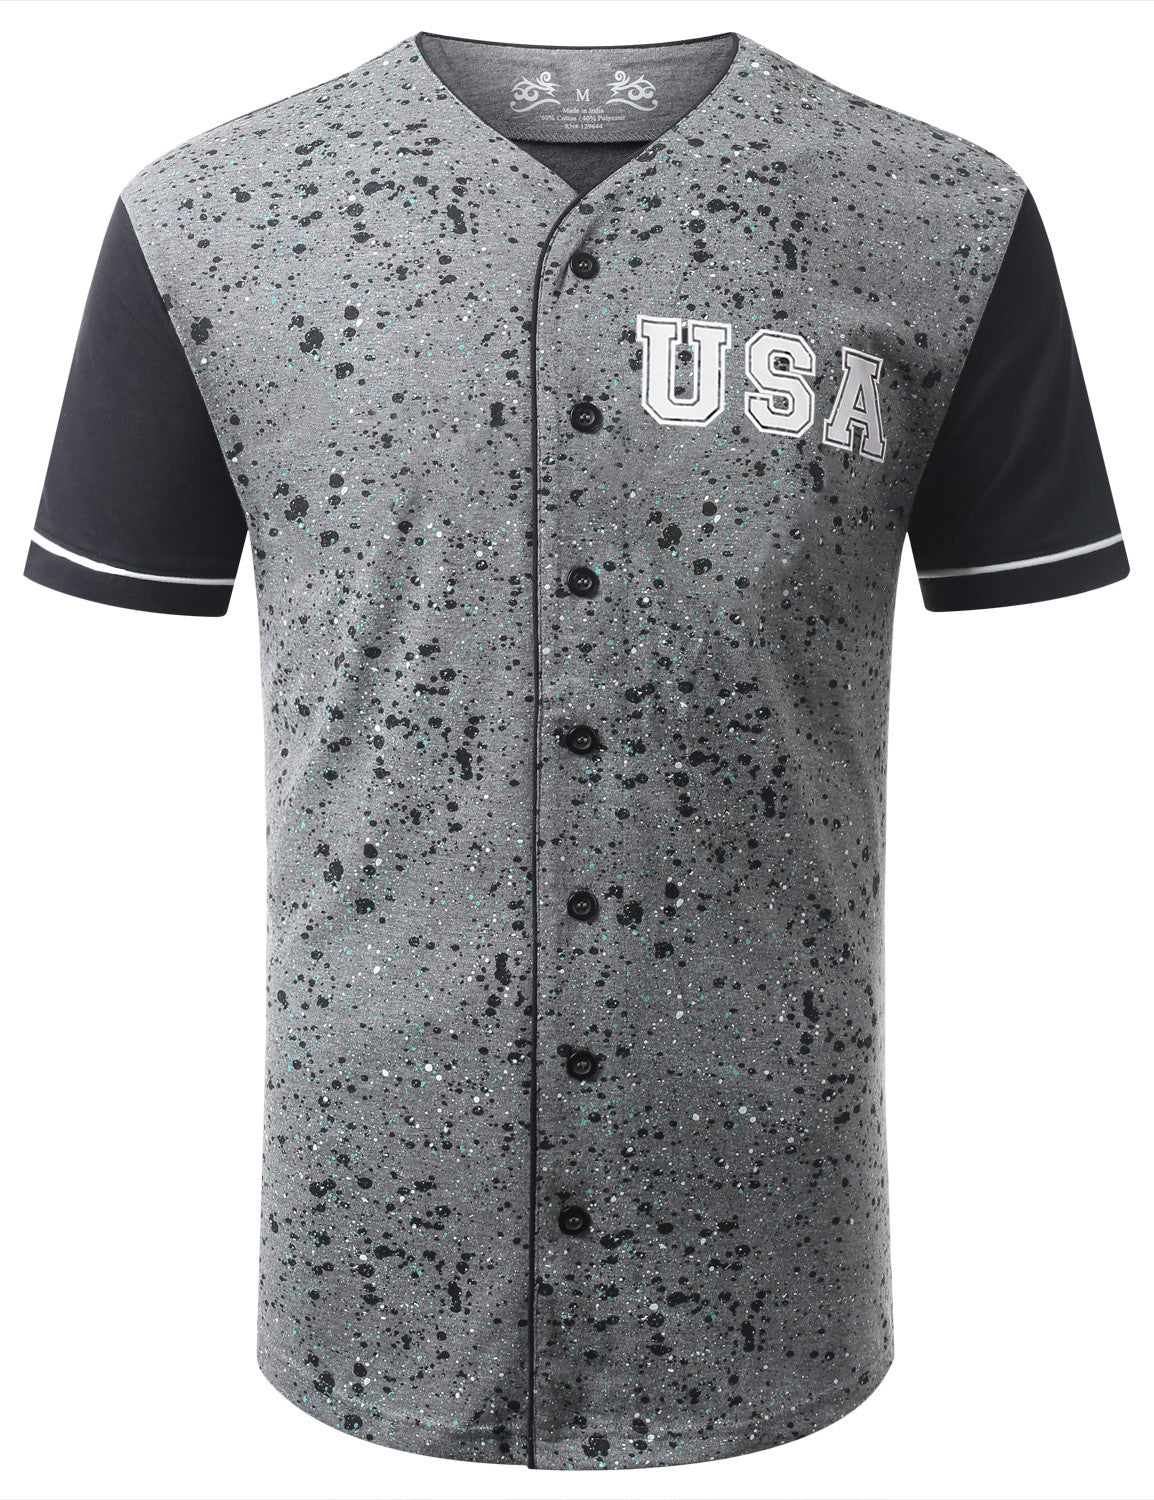 USA Color Splatter Baseball Tshirt - URBANCREWS